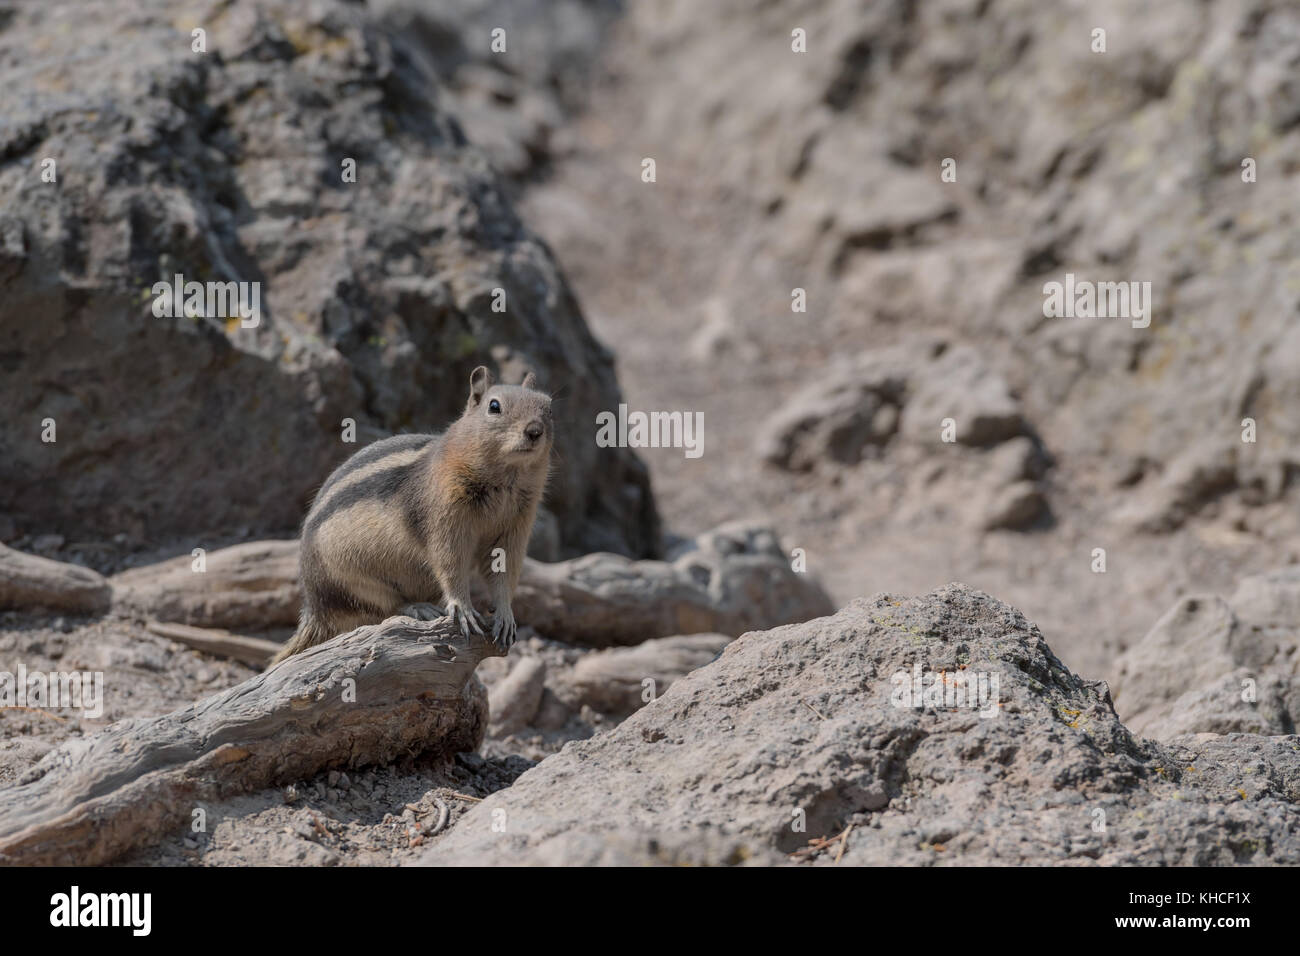 Ground Squirrel On Dusty Trail with copy space to right - Stock Image